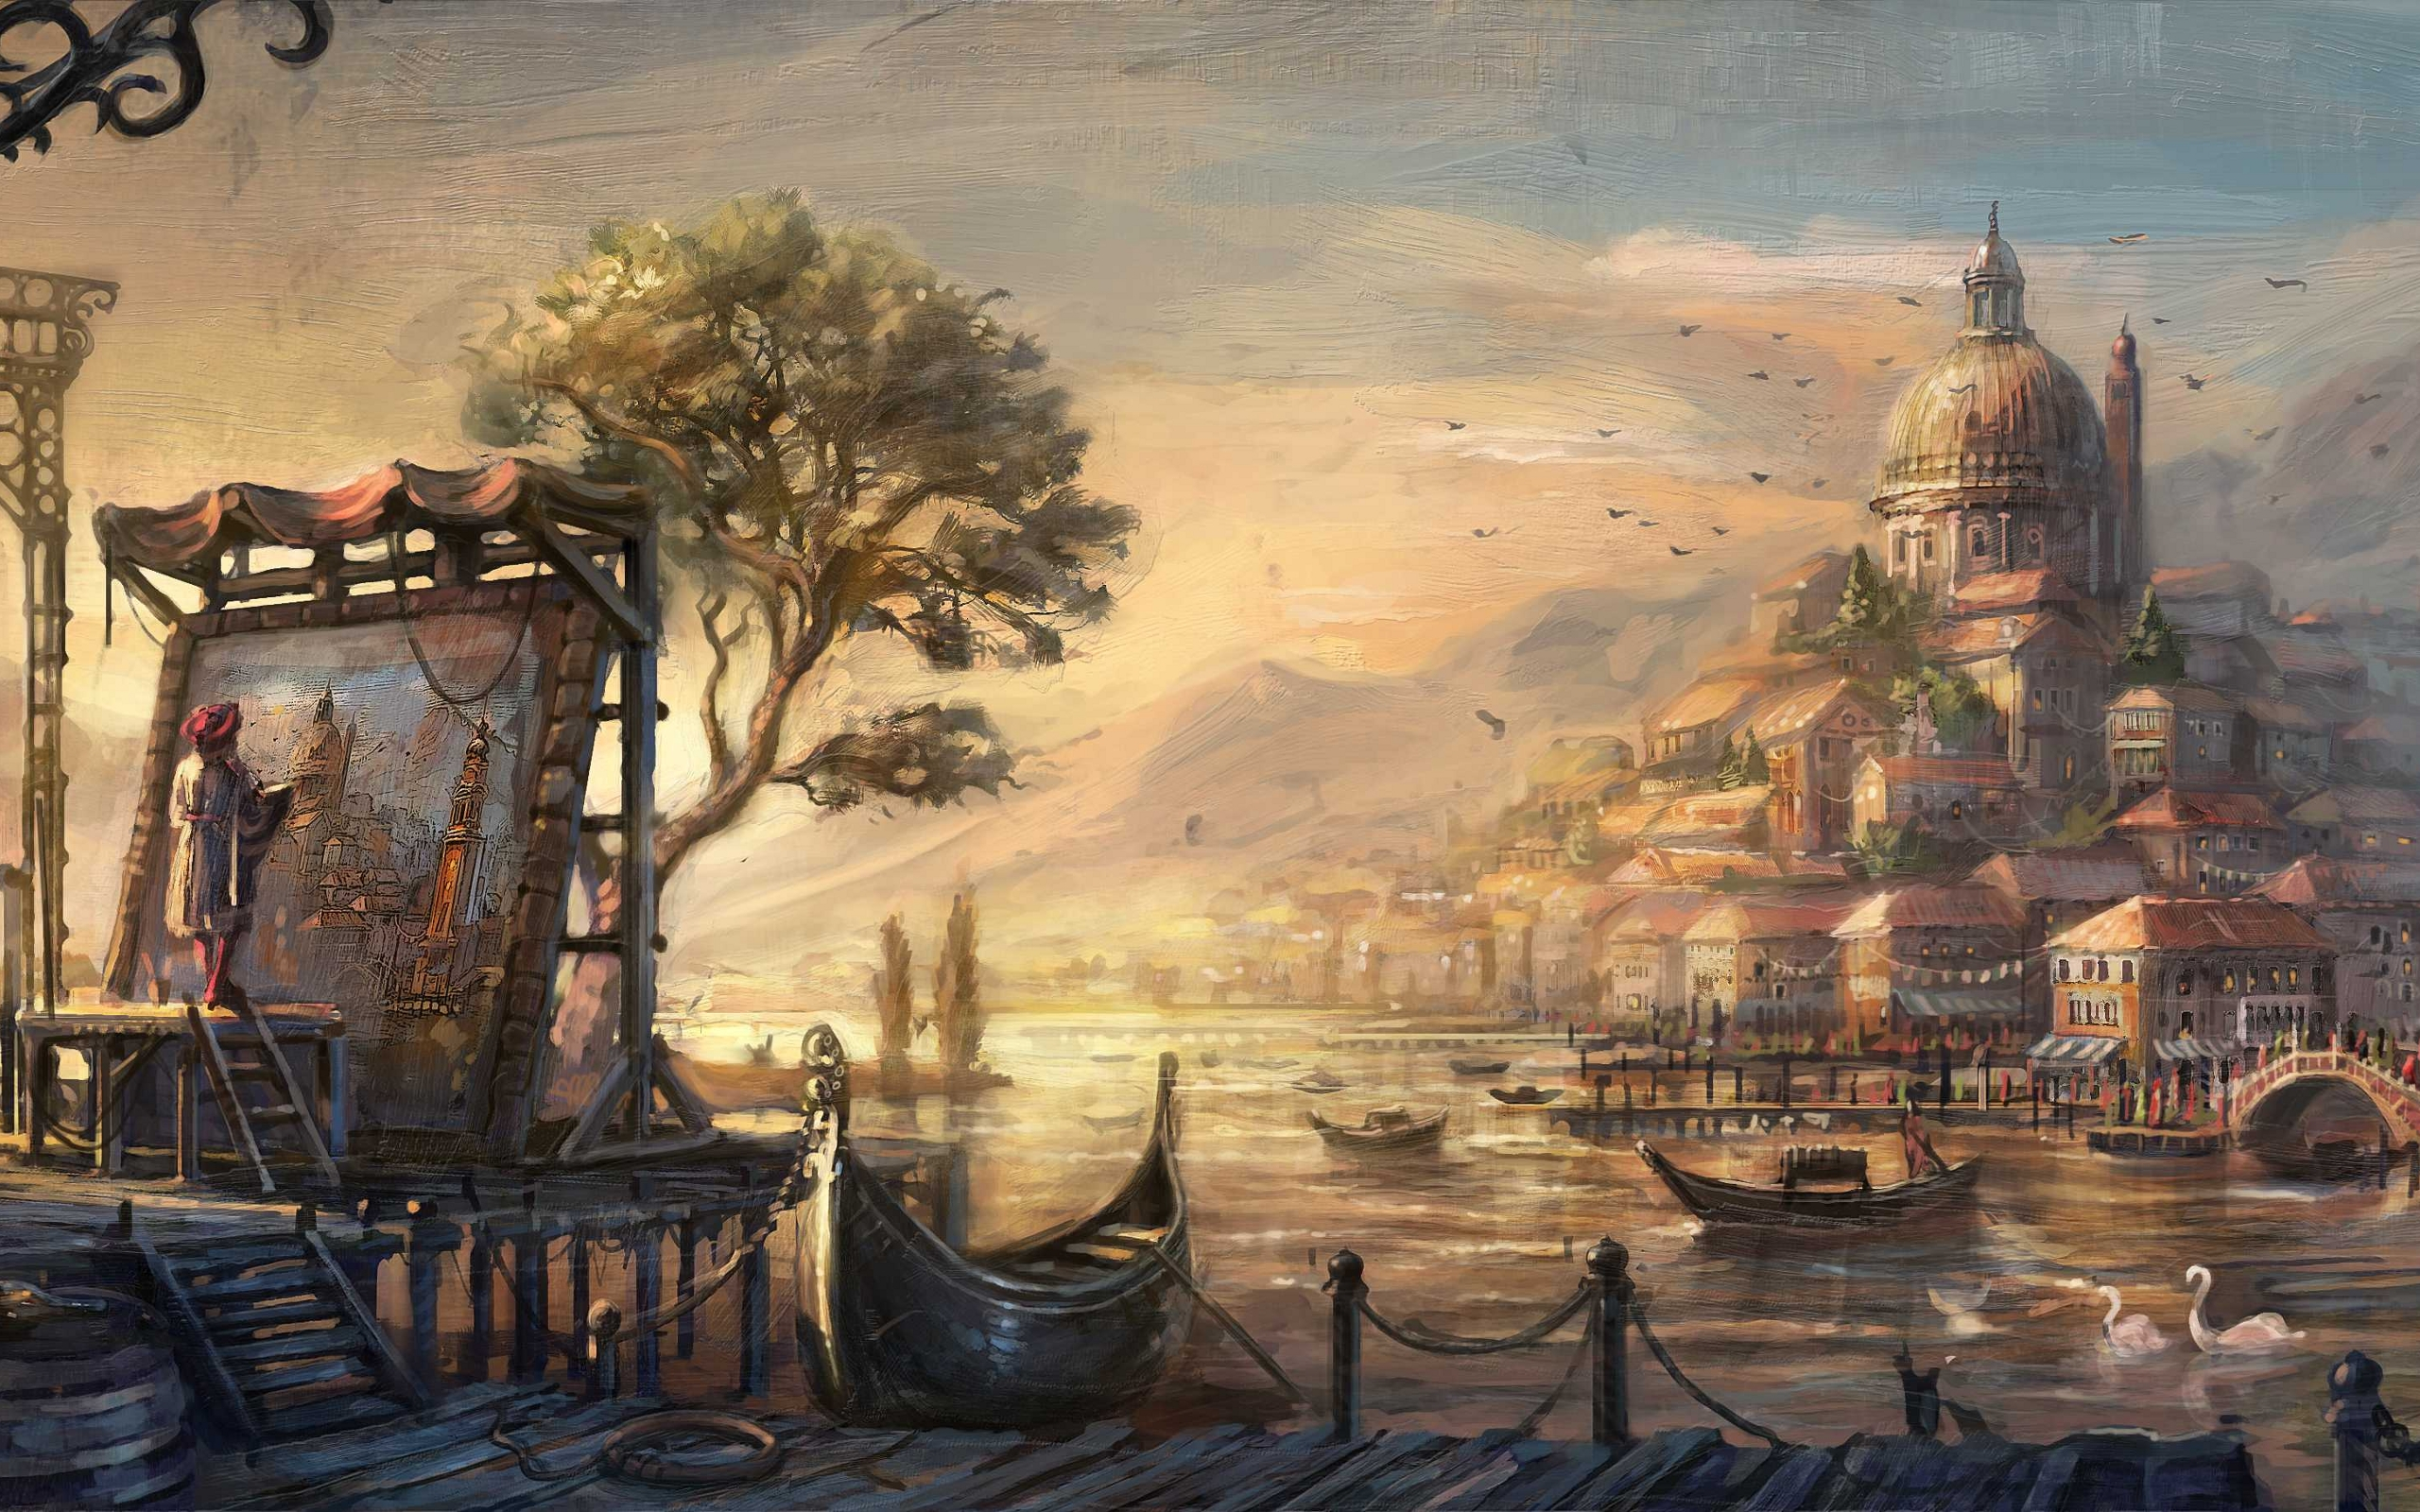 oil painting wallpaper hd,painting,strategy video game,adventure game,art,watercolor paint